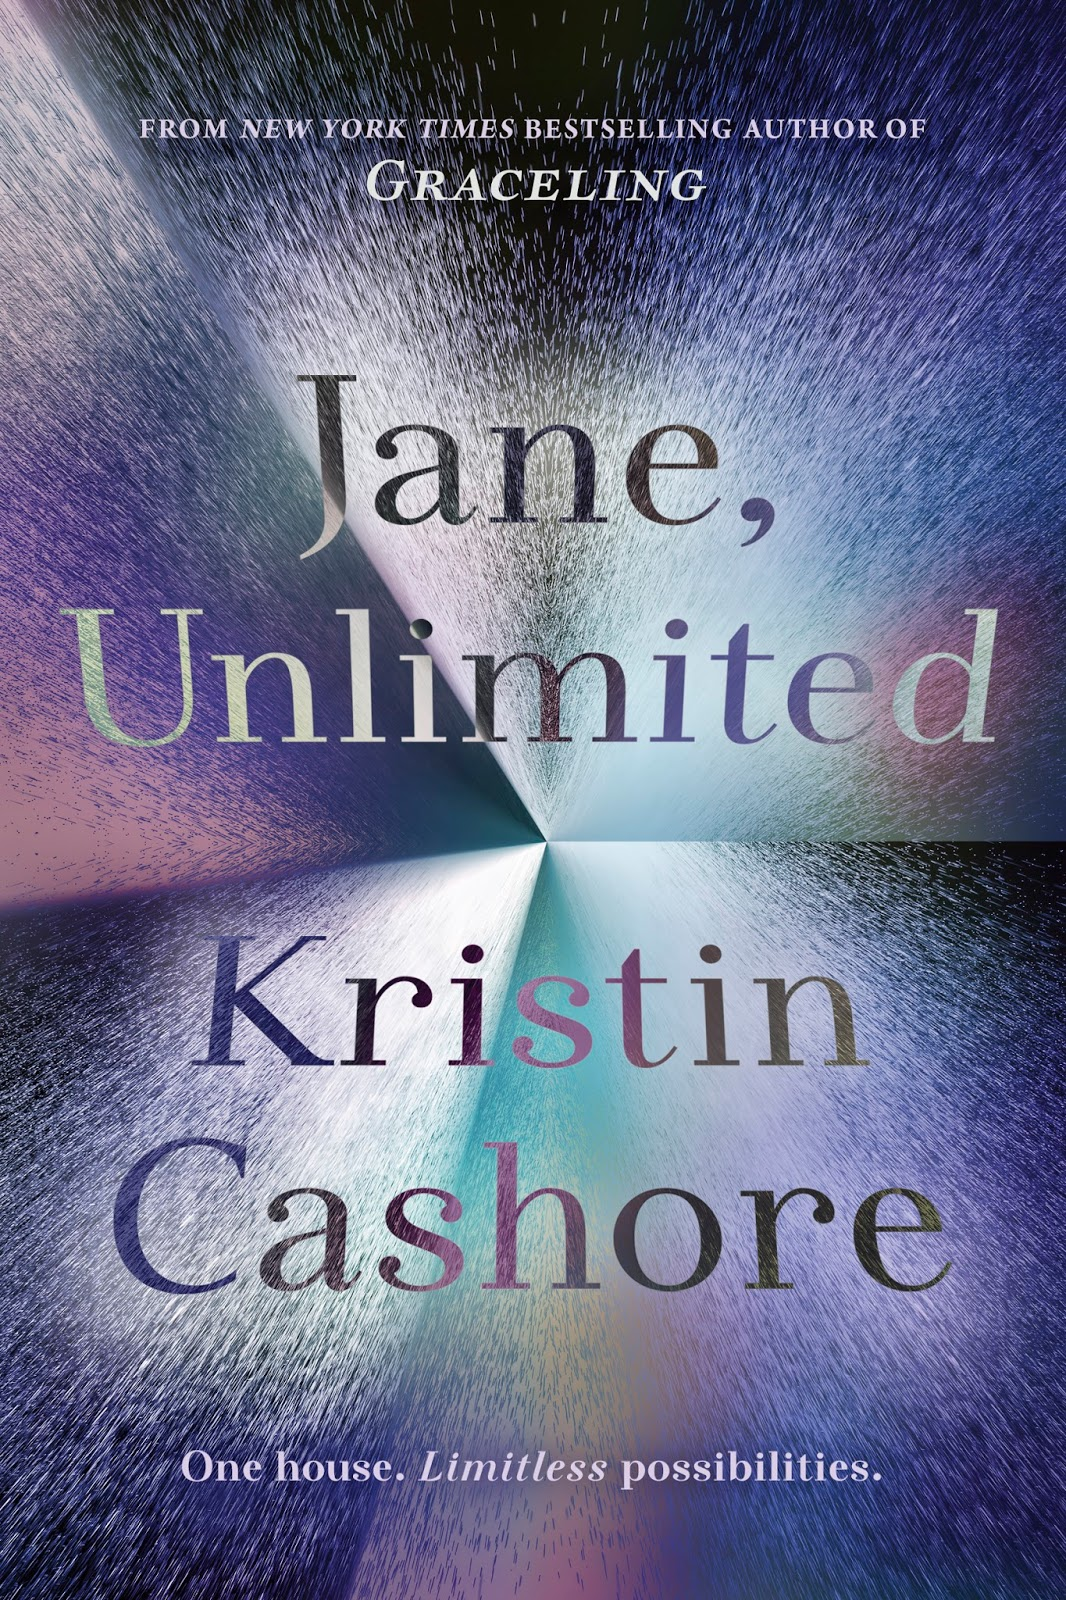 Waiting On Wednesday Is A Weekly Event Hosted By Breaking The Spine That Spotlights Upcoming Releases Were Eagerly Anticipating JANE